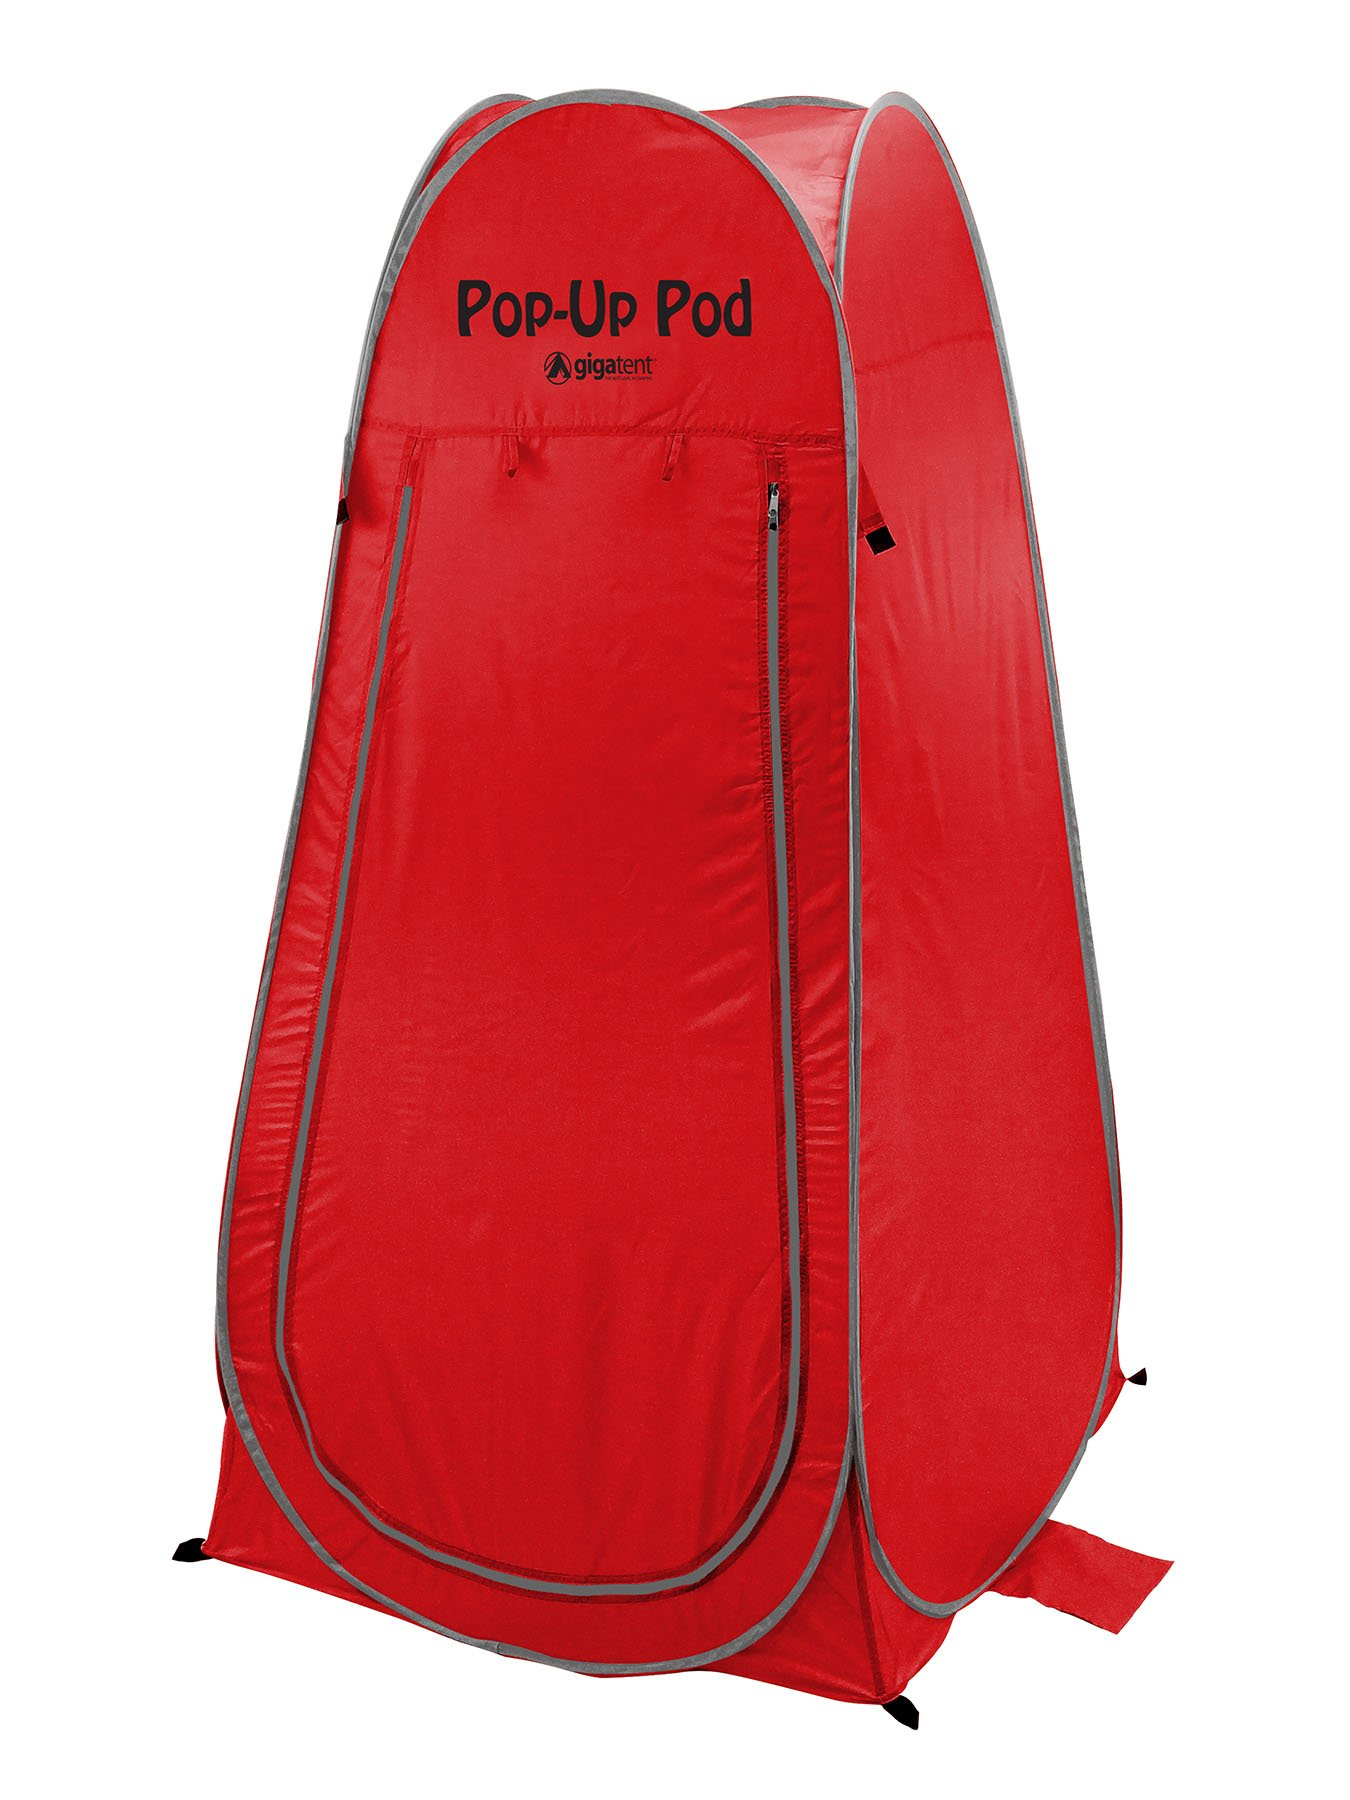 GigaTent Portable Pop Up Pod Changing Tent Room + Carrying Bag by GigaTent